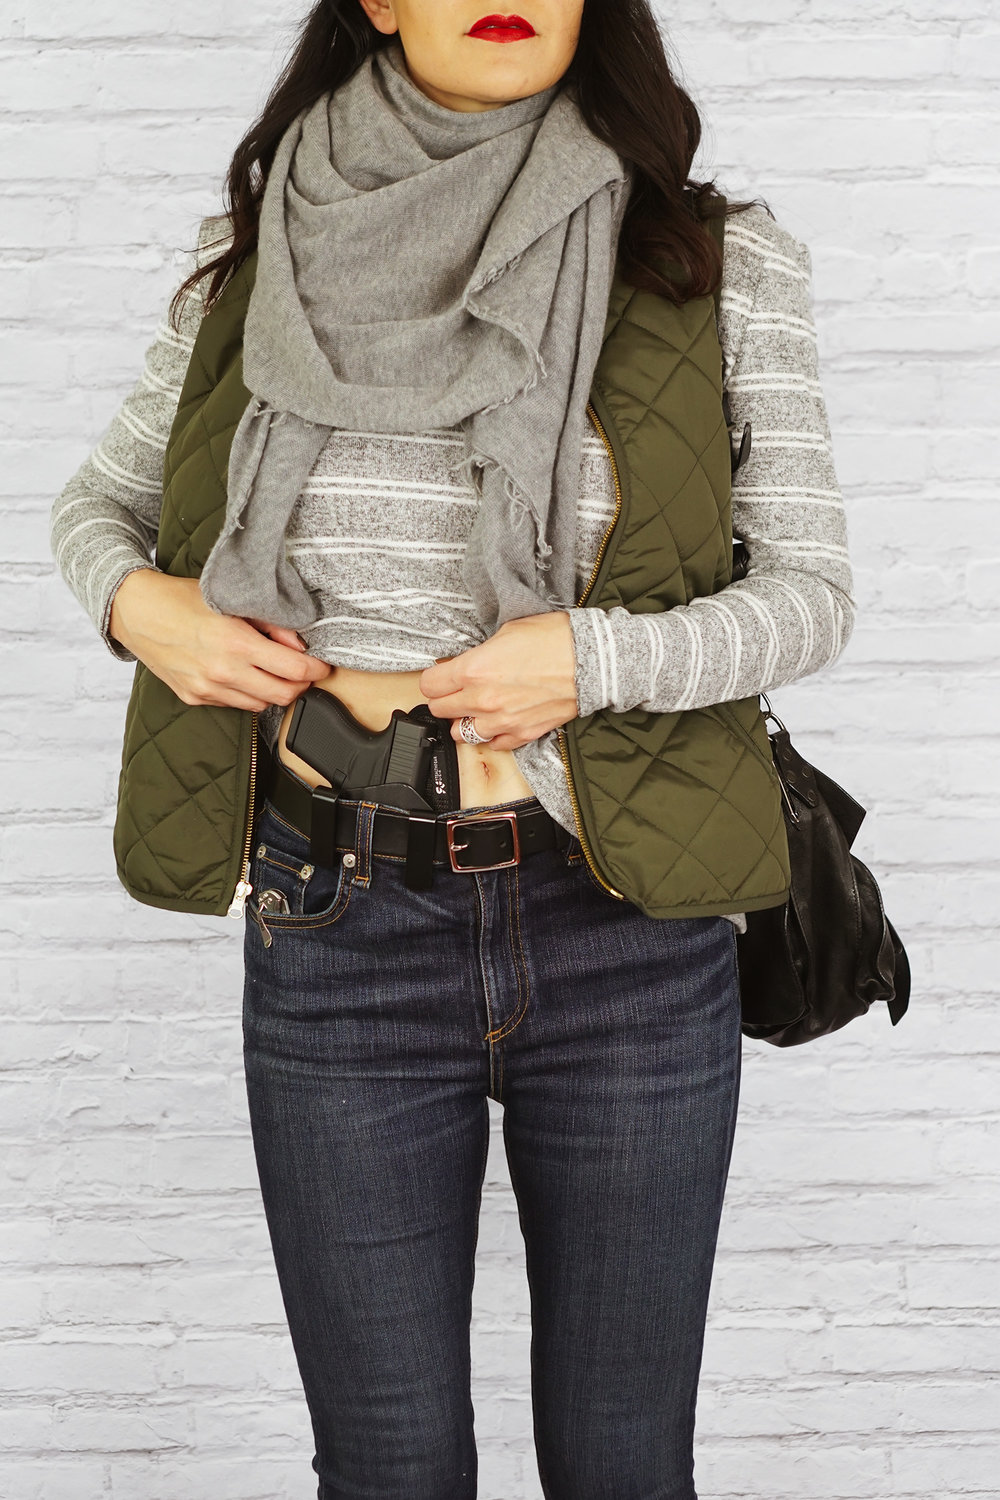 StealthGear USA Holster, Glock 43, Concealed Carry for Women, Women's Concealed Carry, Concealed Carry Tips